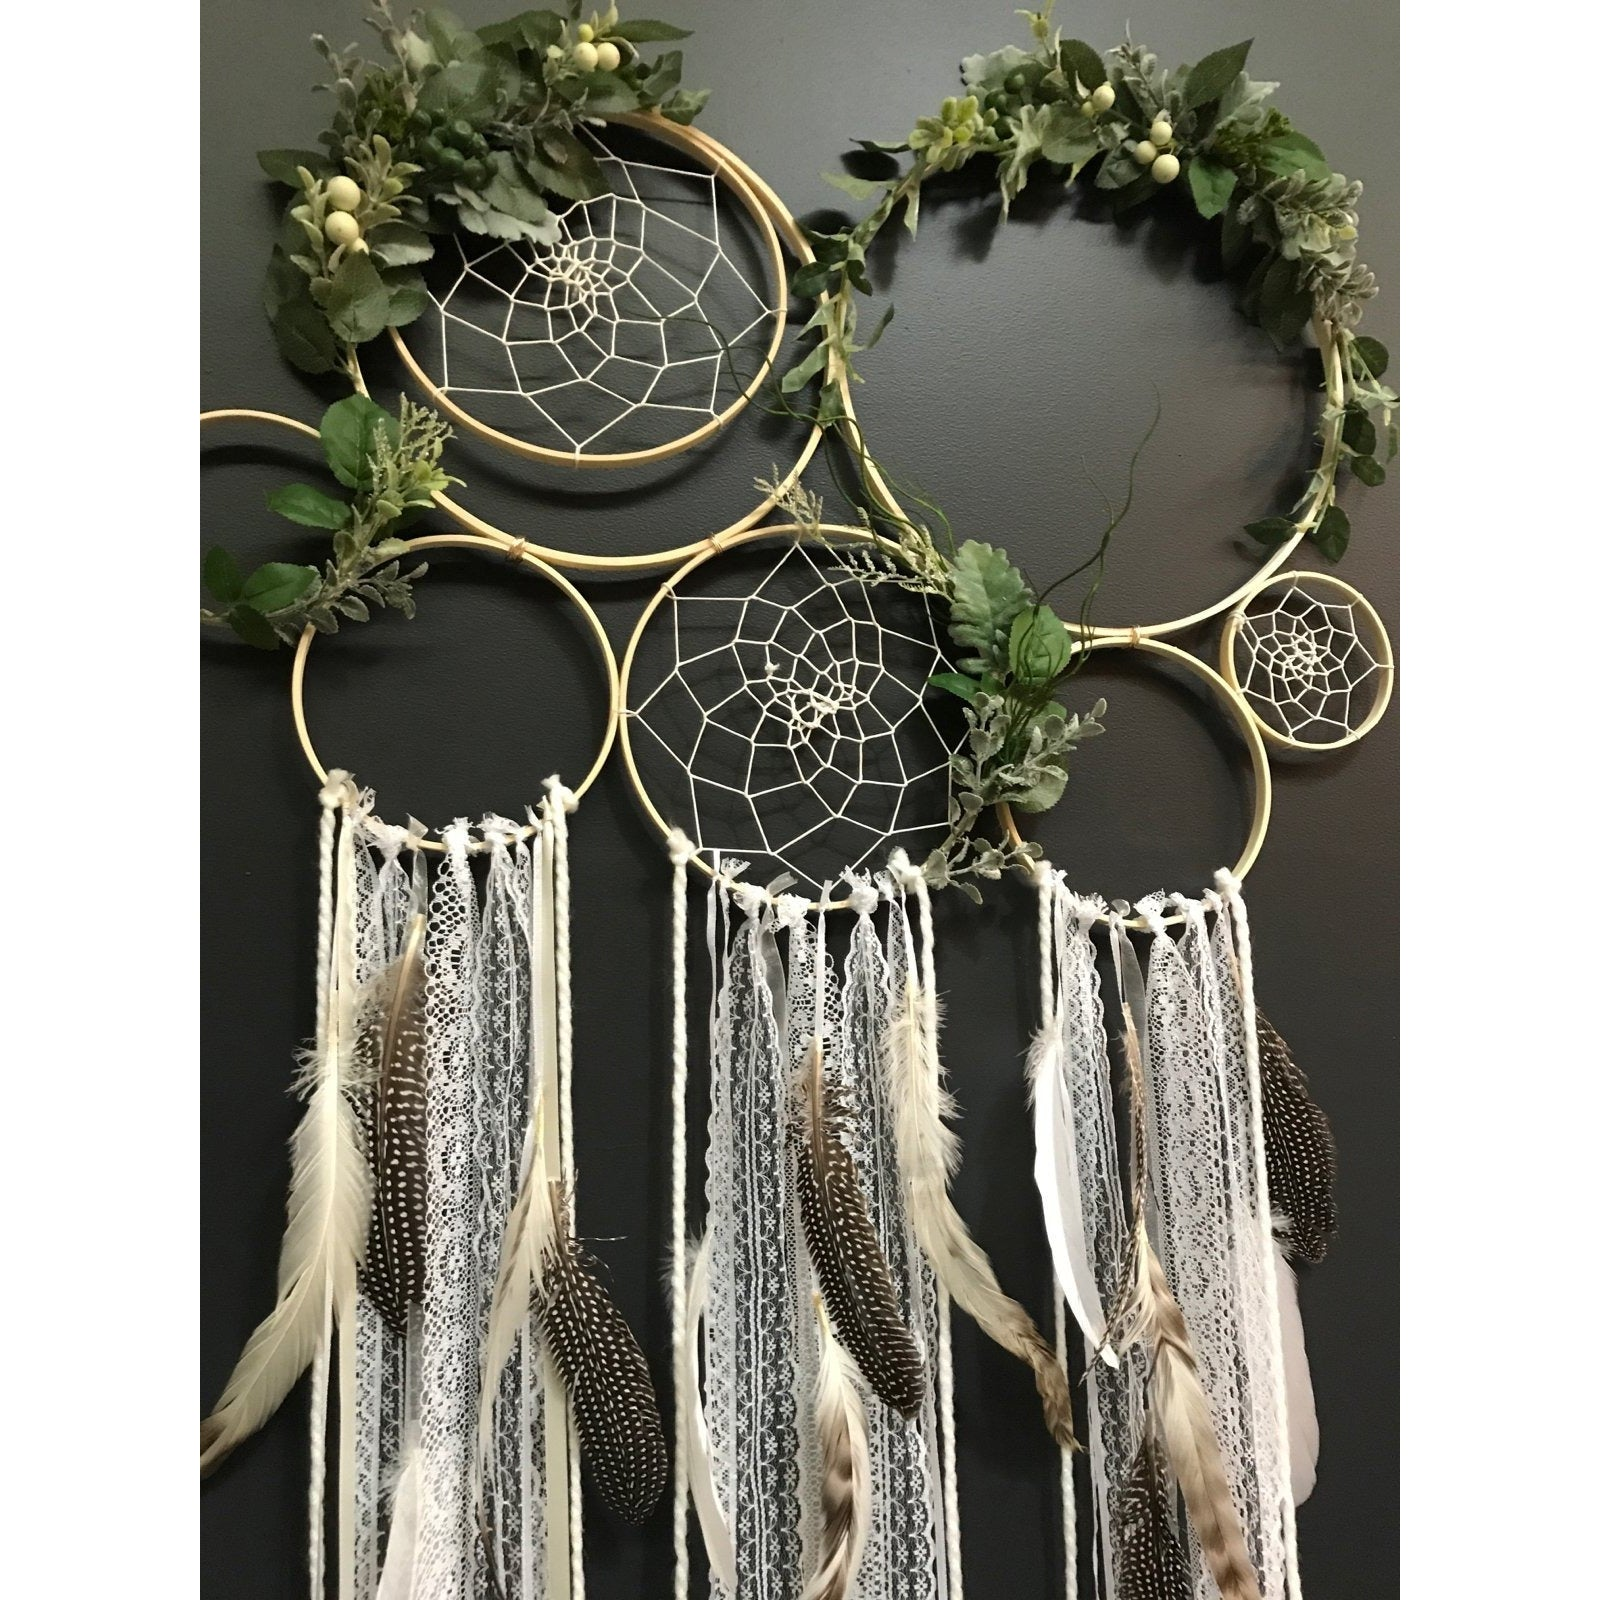 Bohemian guinea Dreamcatcher wall piece.